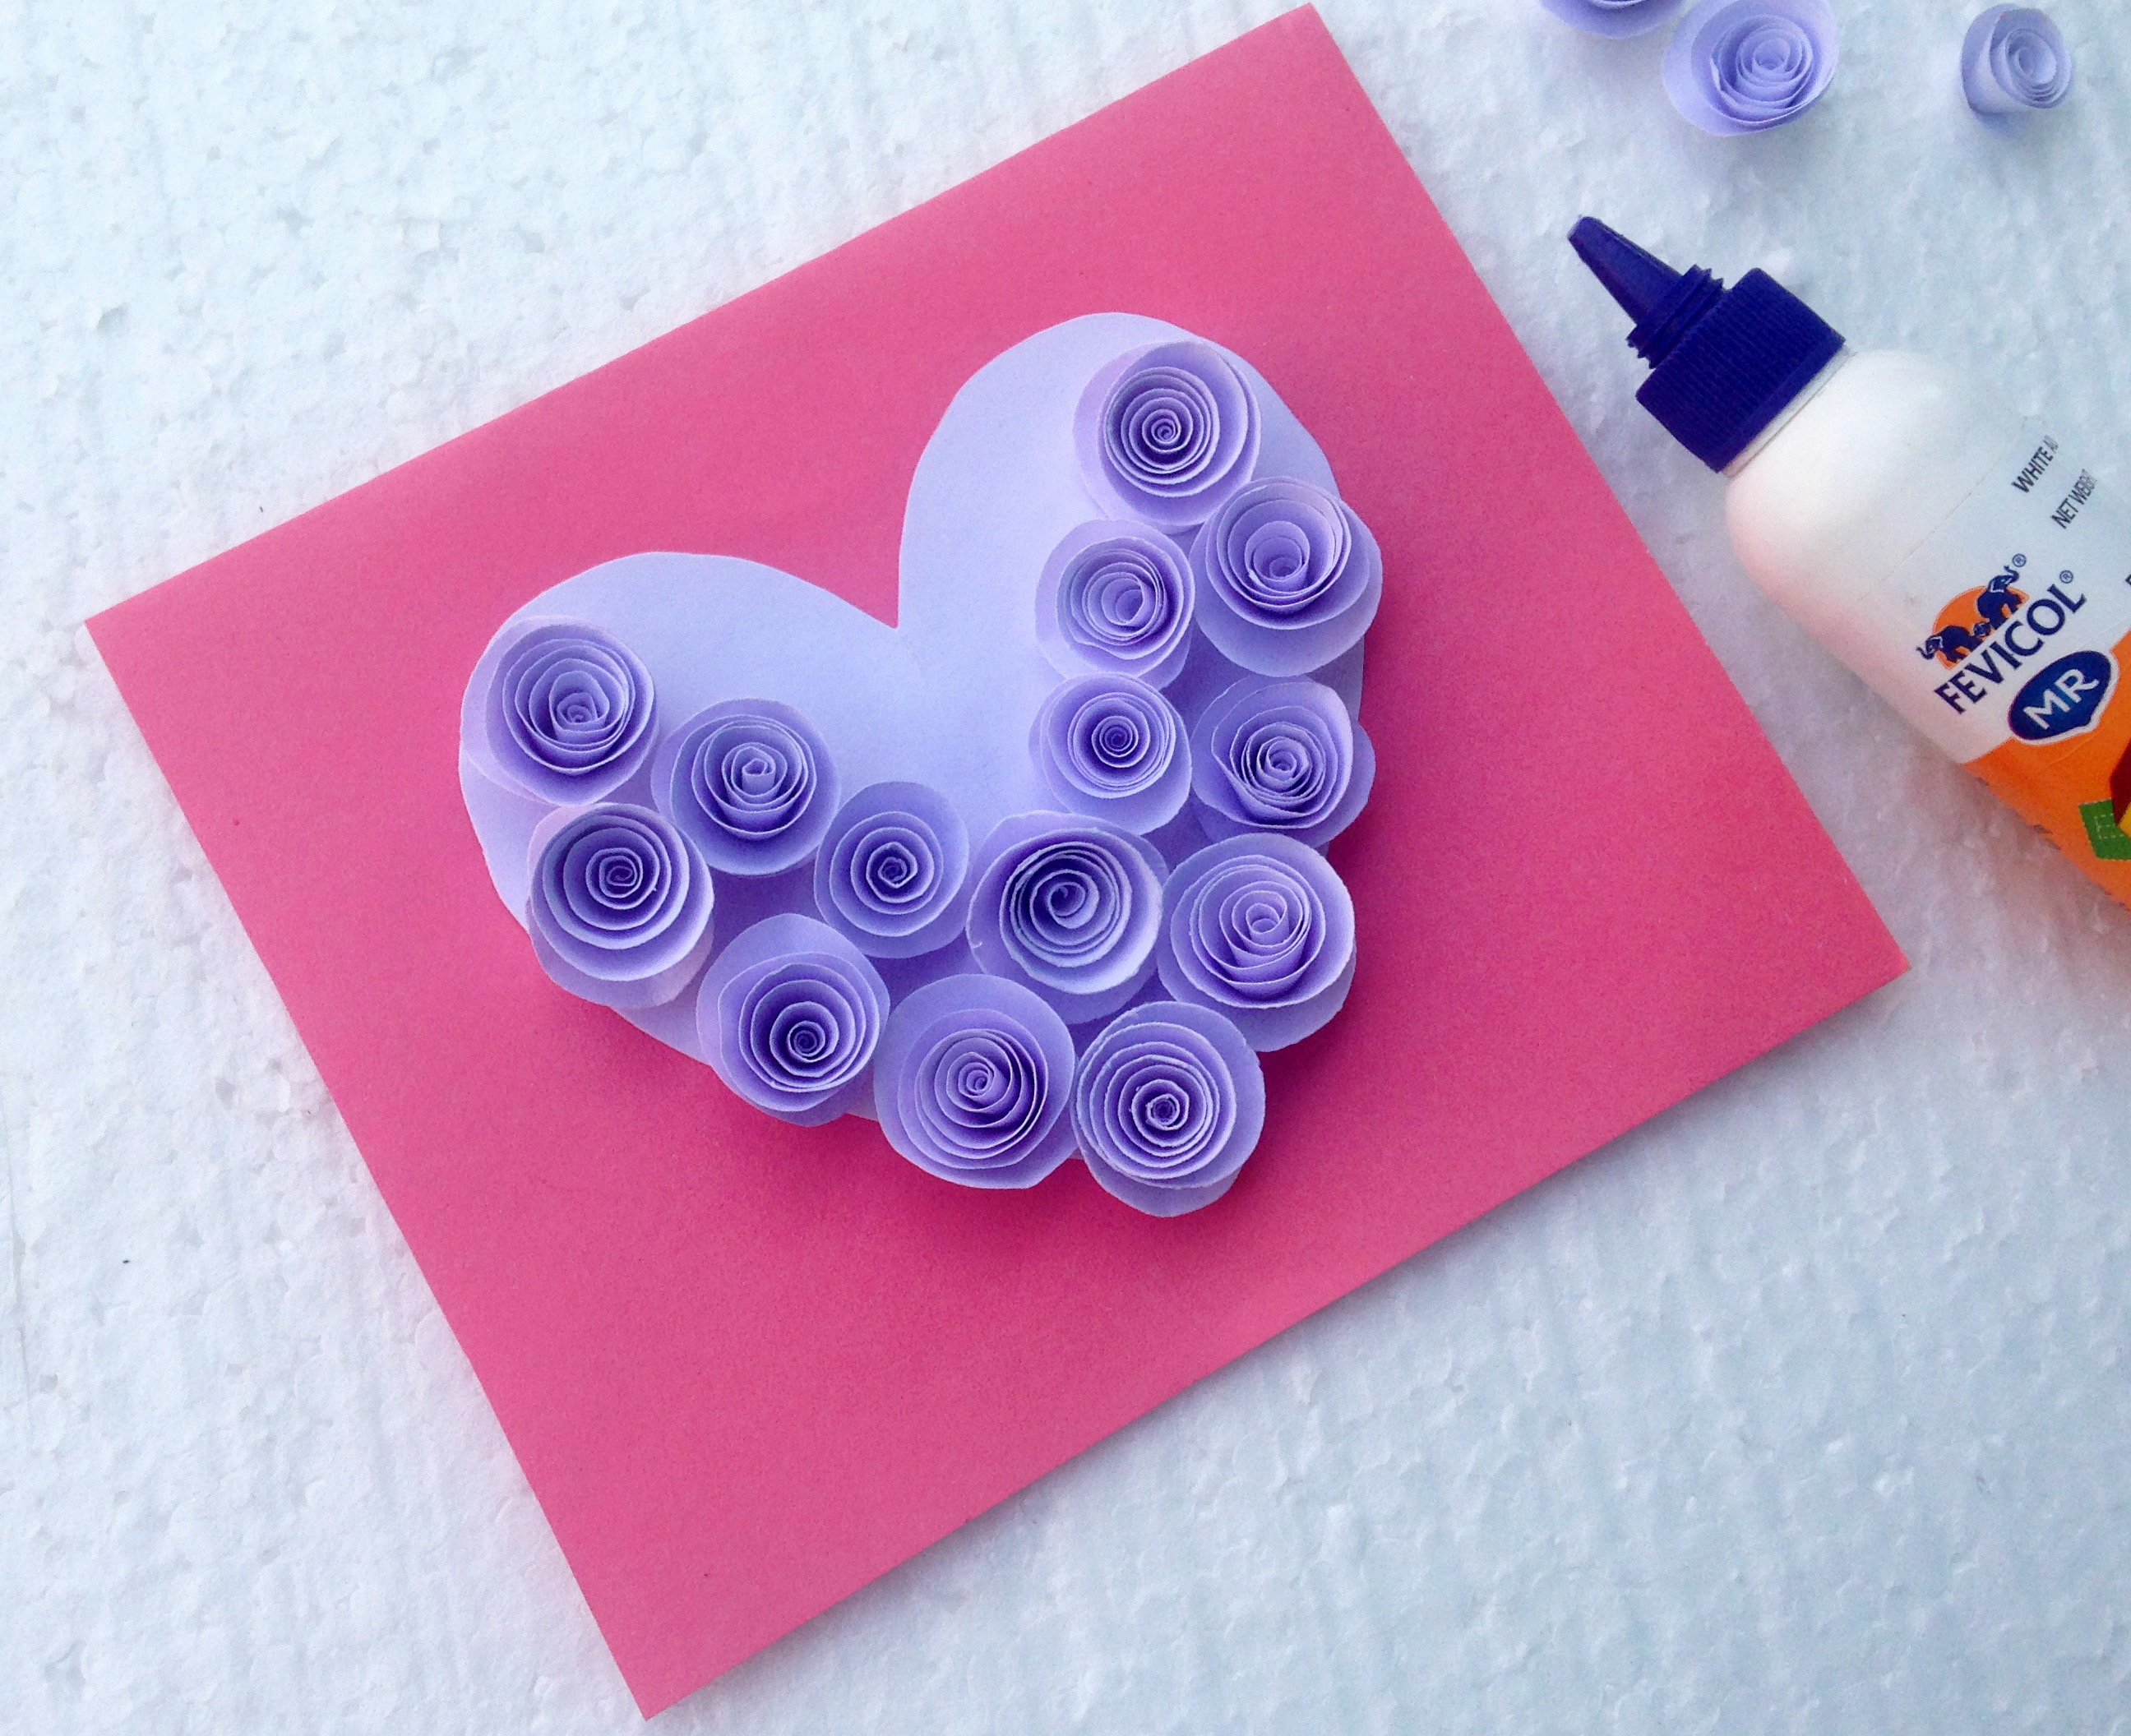 Valentines-day-card-diy-ideas-tutorial